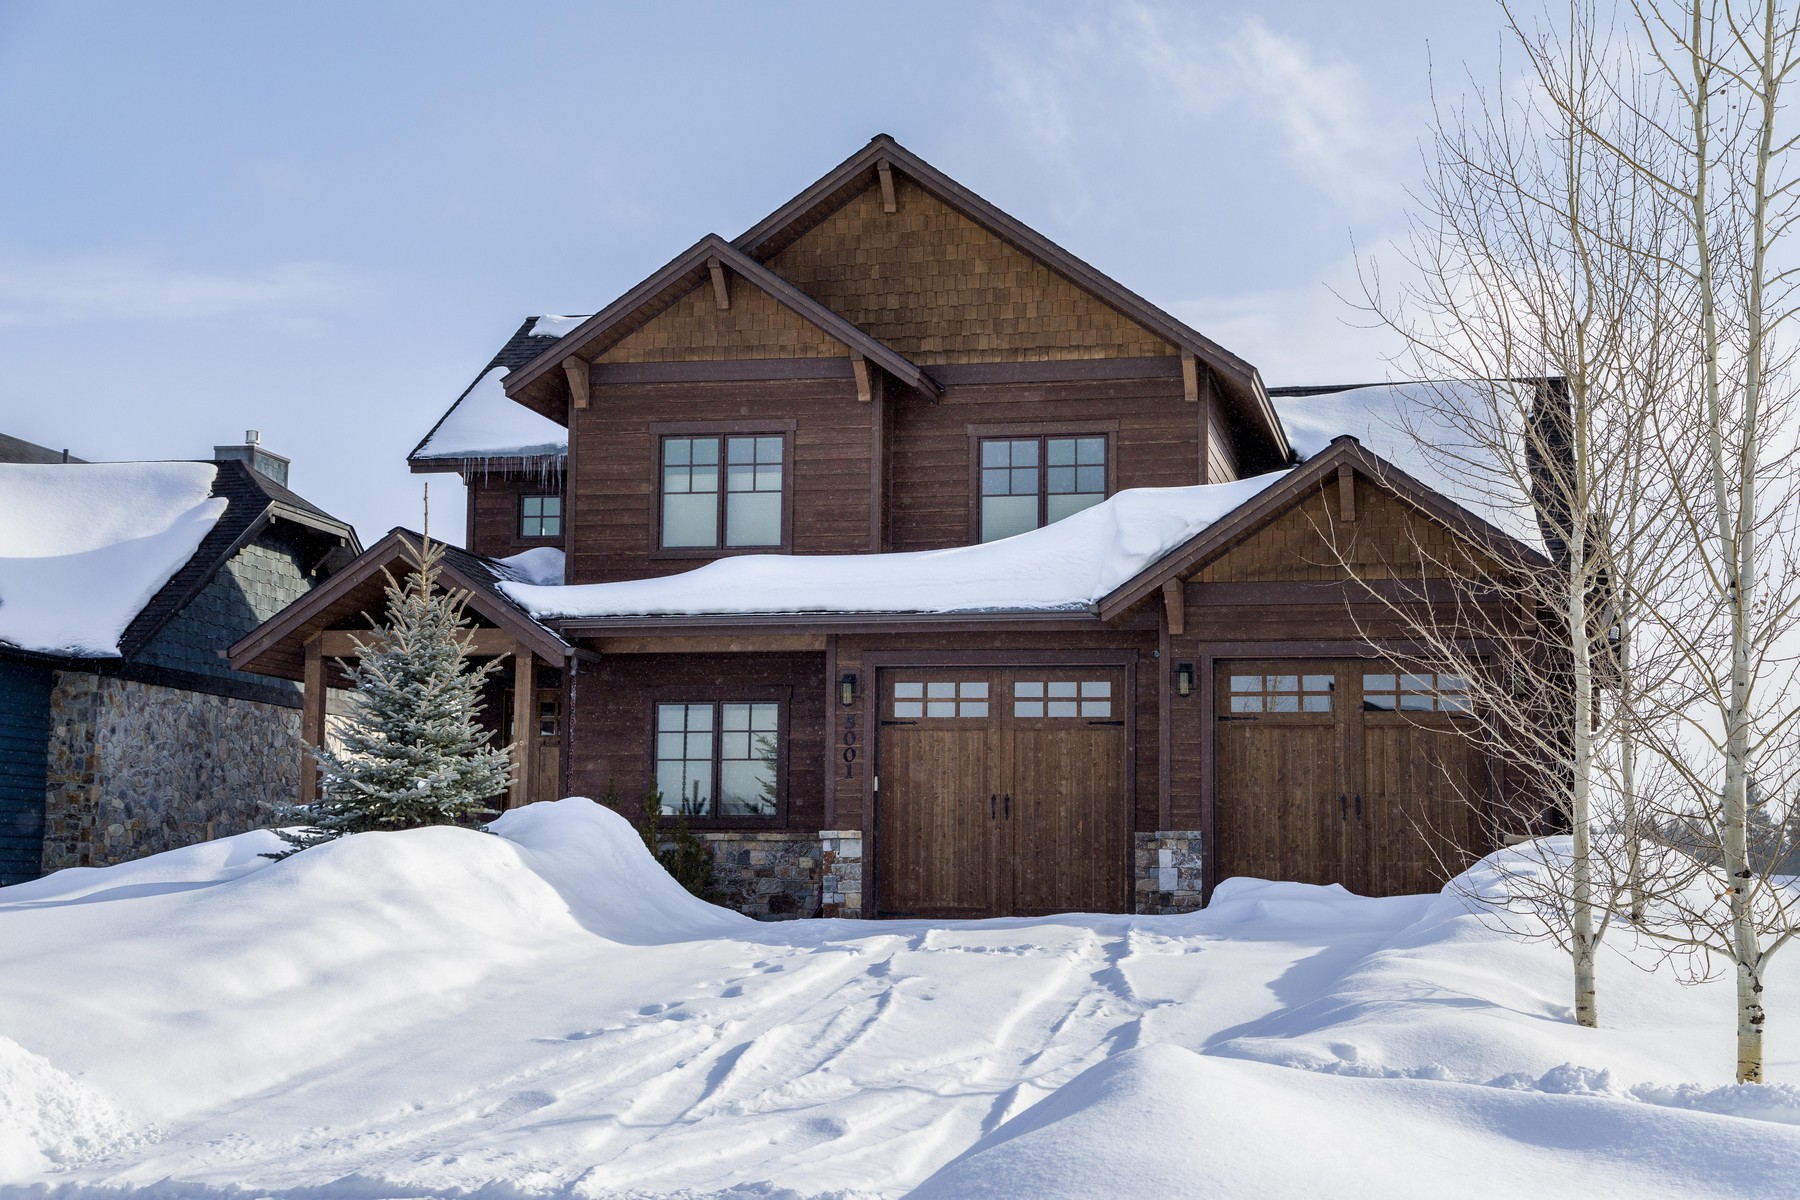 Single Family Home for Sale at 5001 Flatwater Dr , Whitefish, MT 59937 5001 Flatwater Dr, Whitefish, Montana, 59937 United States